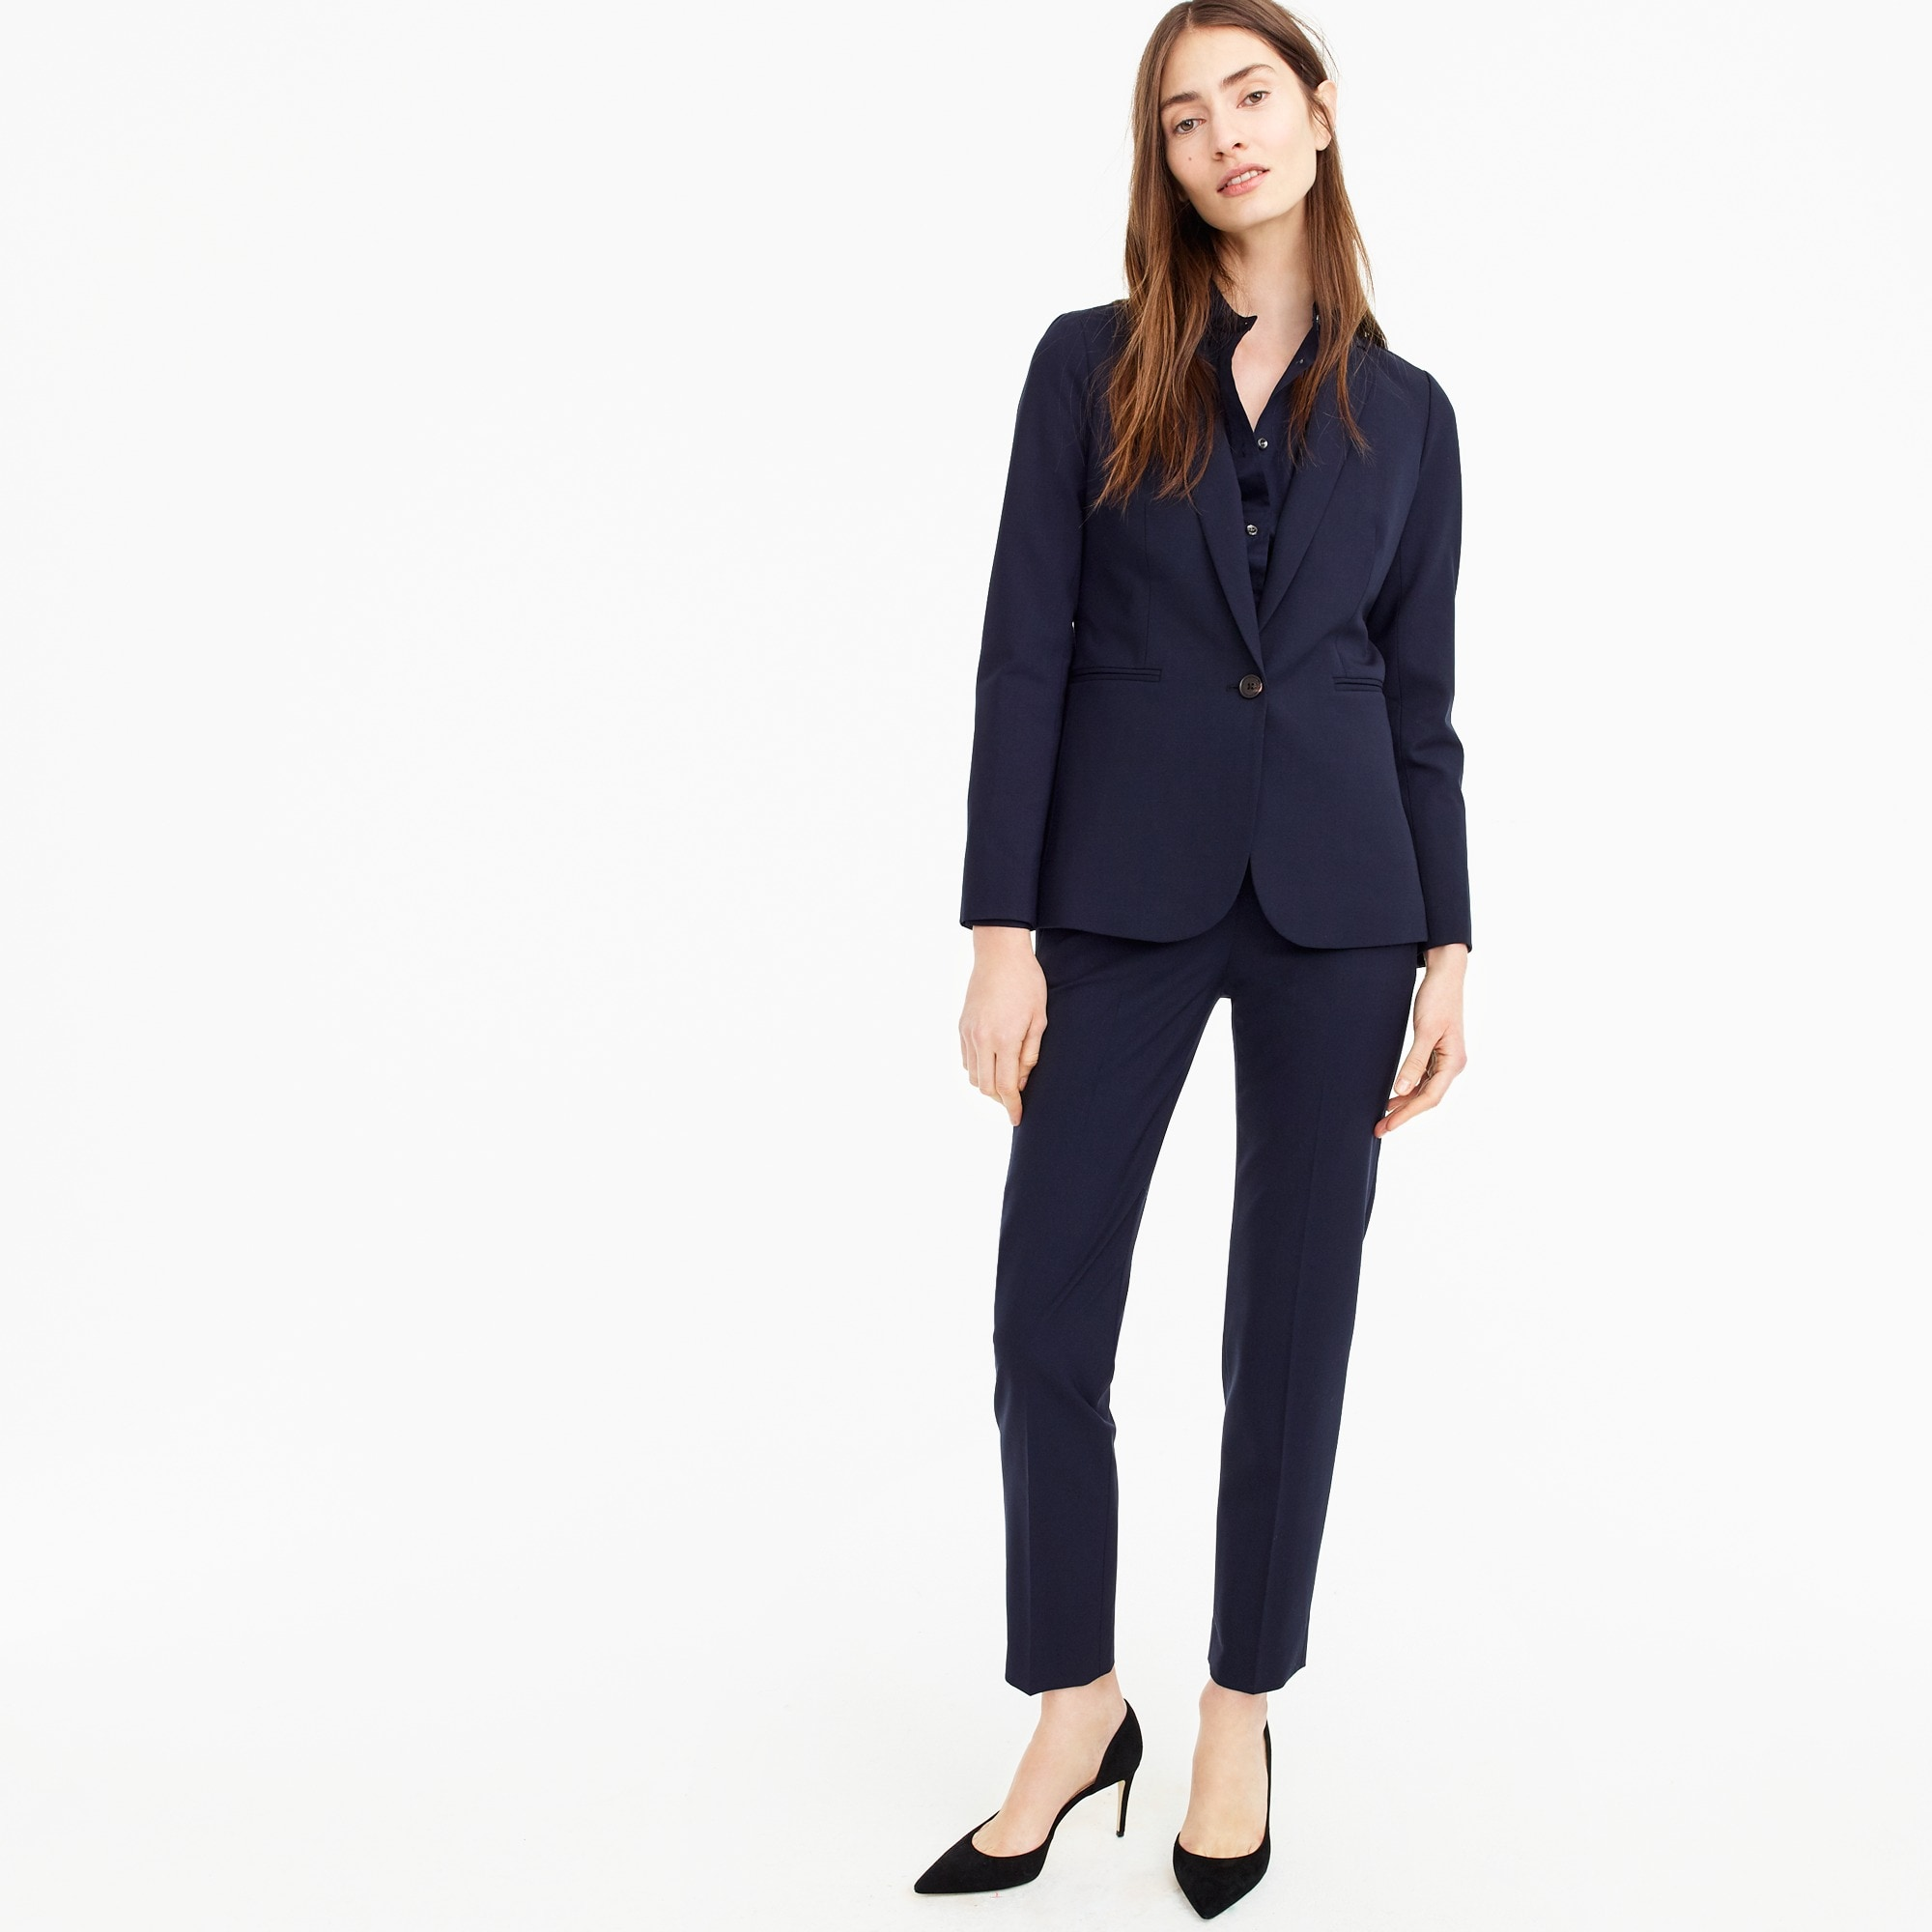 Petite Parke jacket in Italian two-way stretch wool